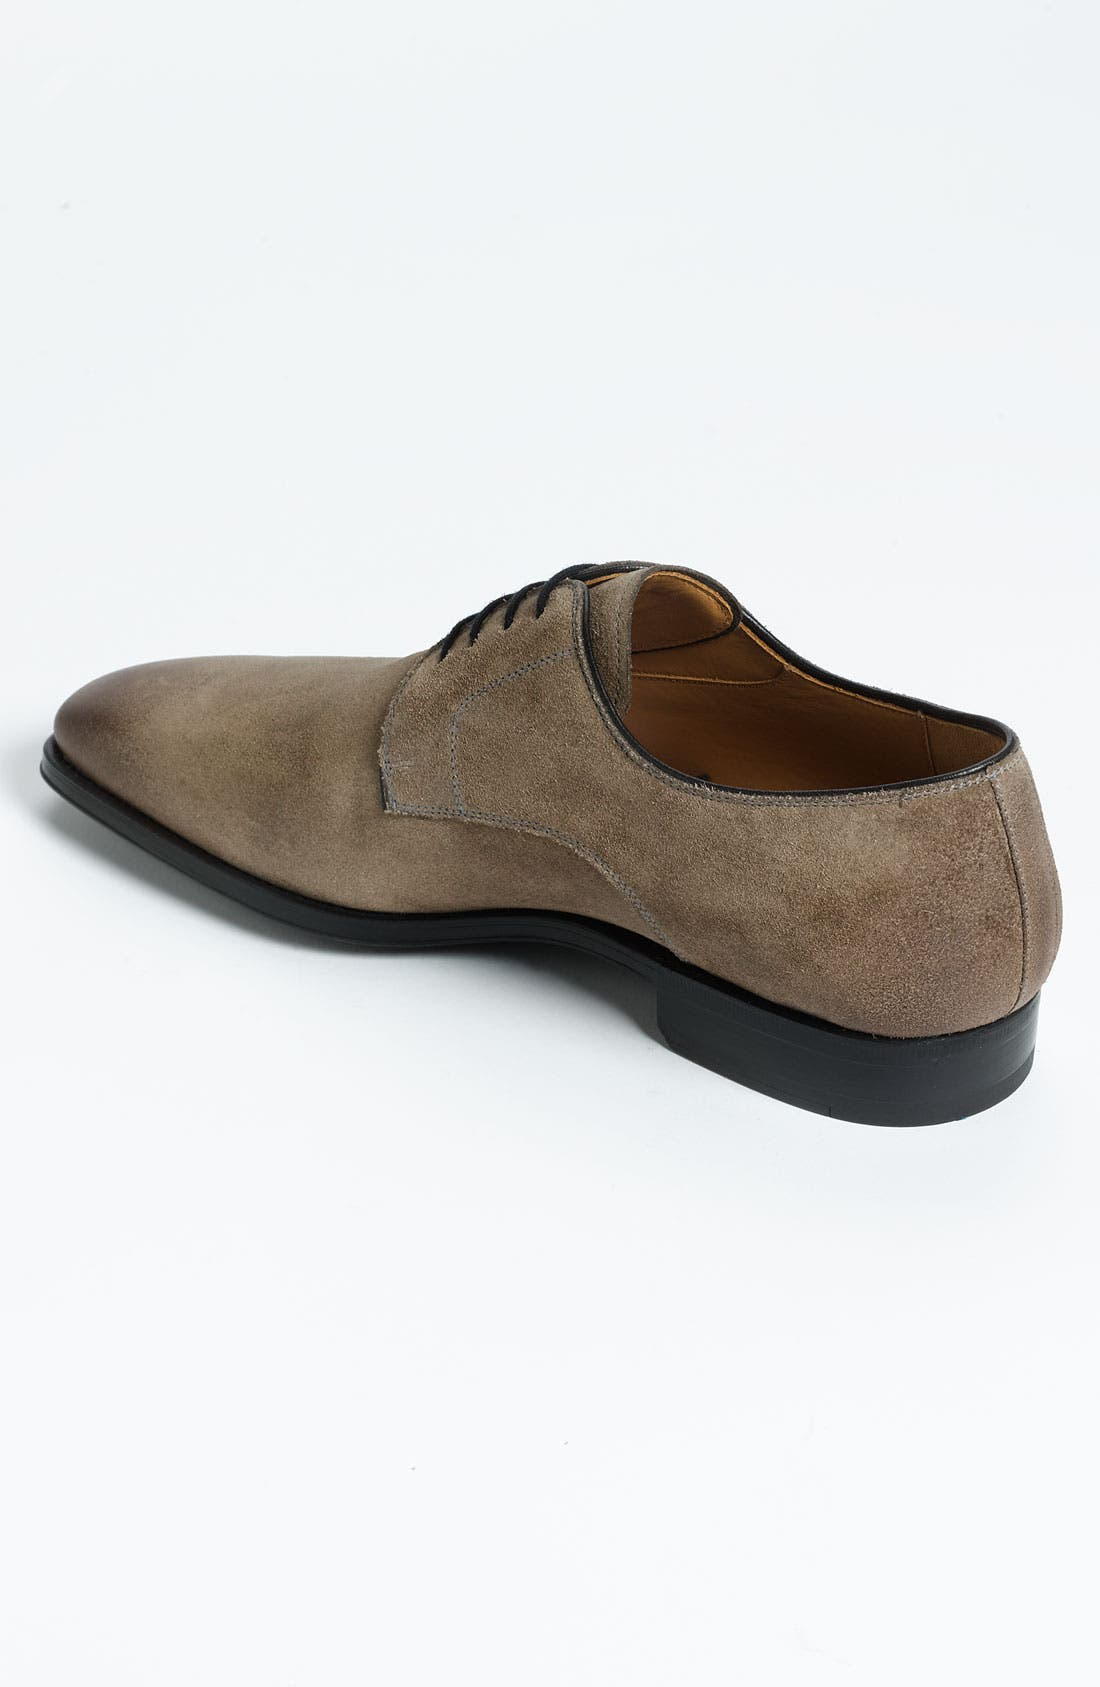 Alternate Image 2  - Magnanni 'Dino' Suede Buck Shoe